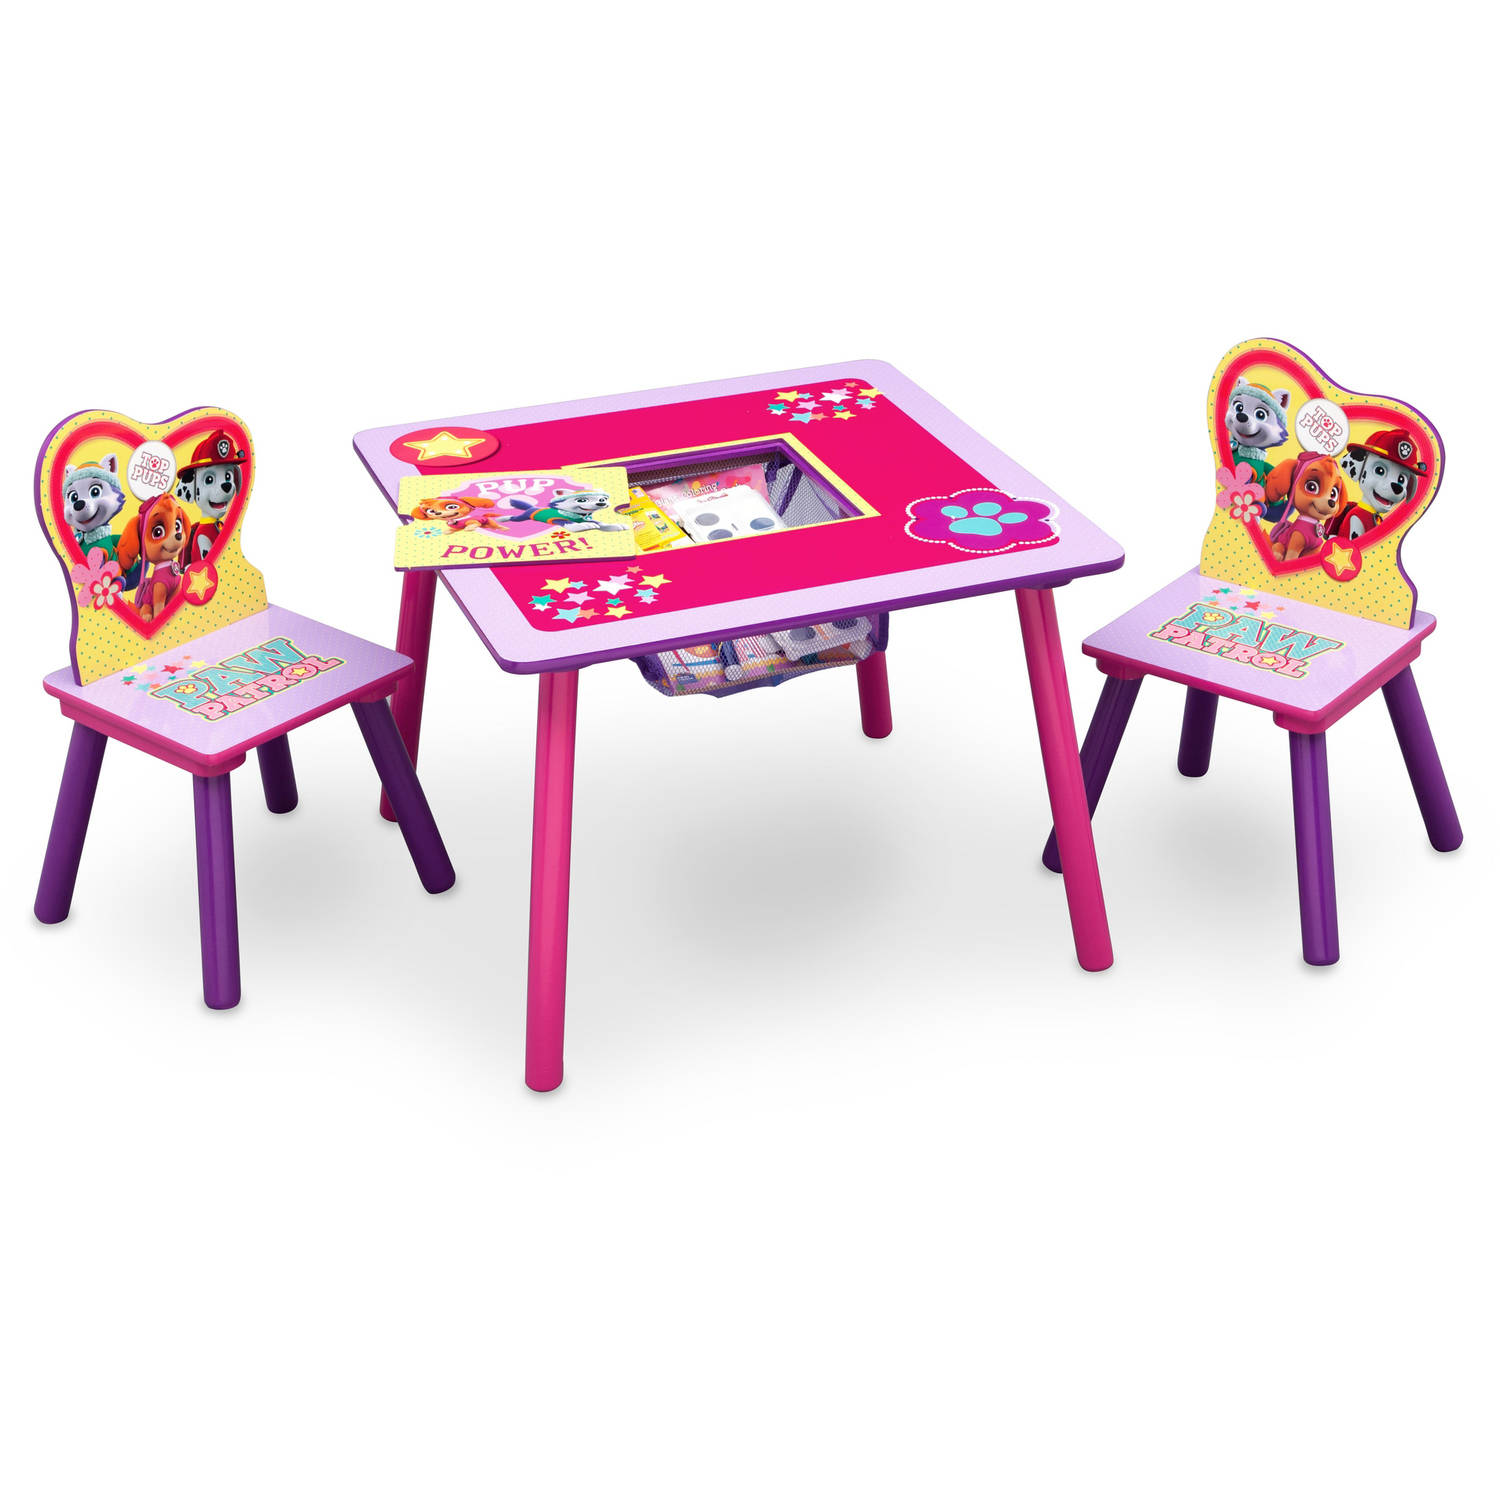 Kidkraft Heart Table And Chair Set Child Storage Table And Chairs Home Ideas